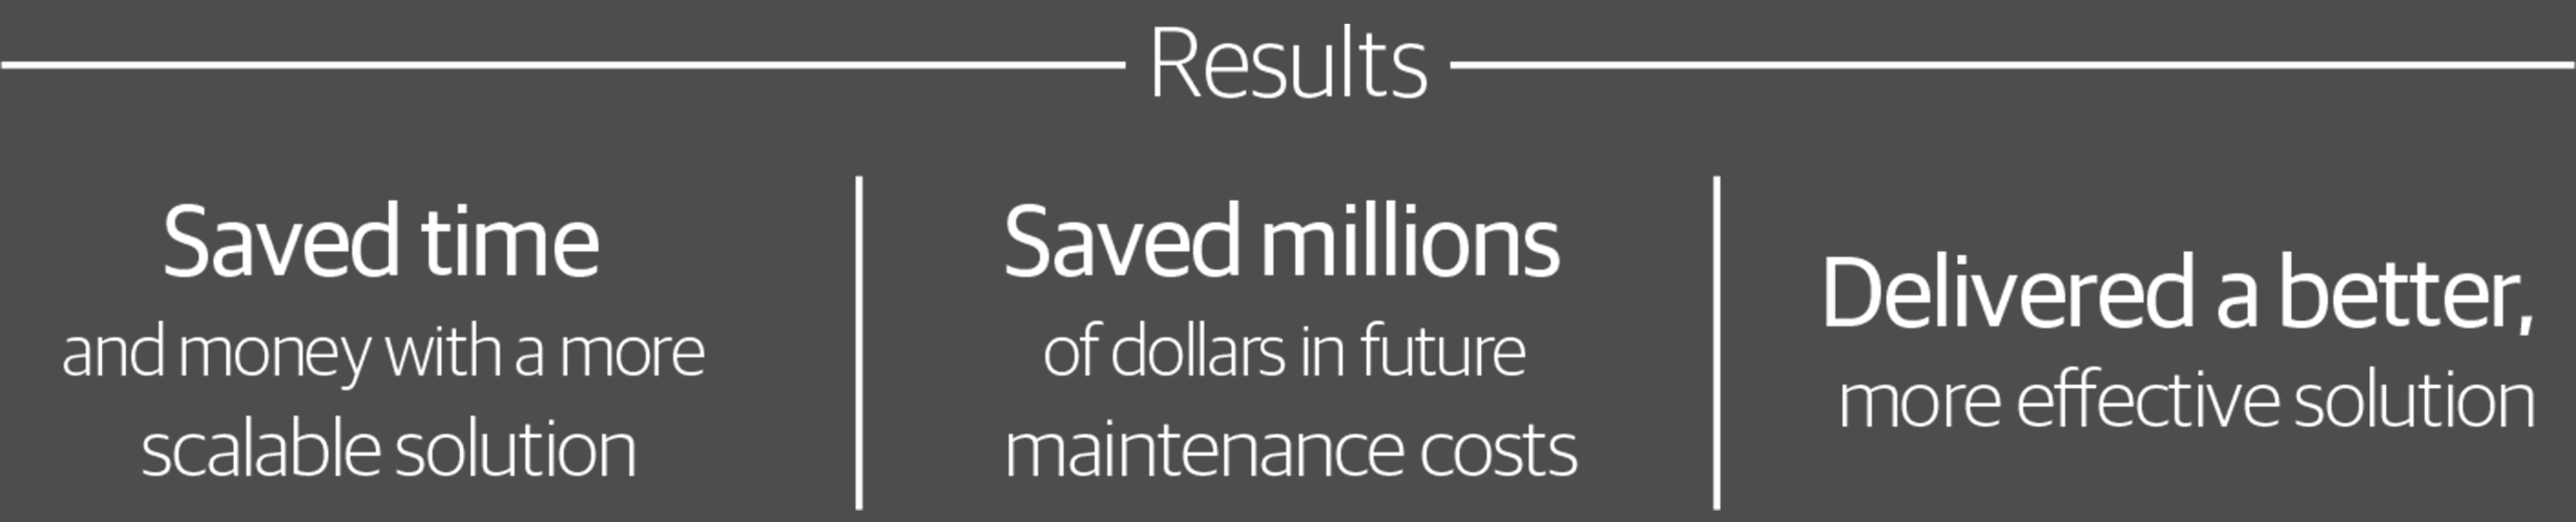 We came up with a more scalable solution and helped oru client save millions of dollars